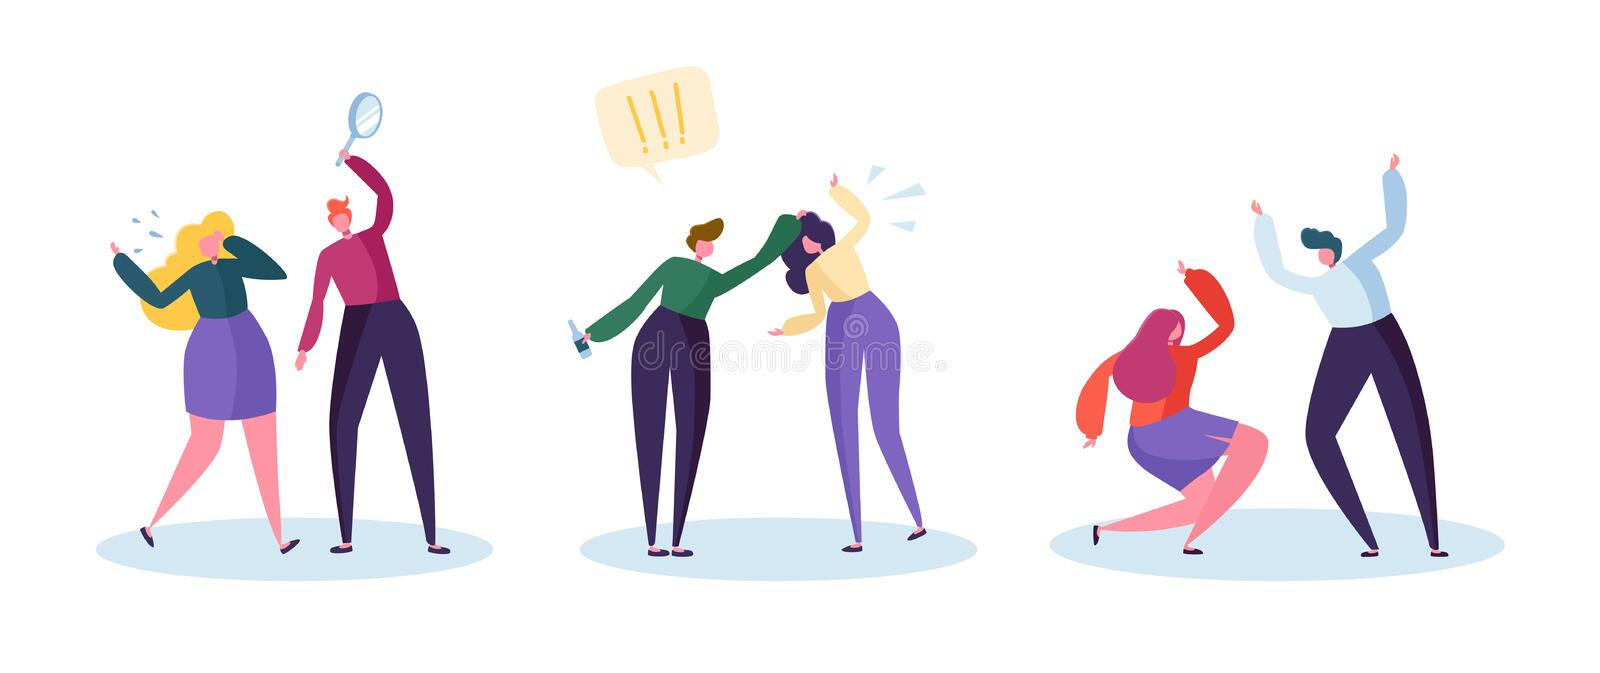 Drinking Problem and Domestic Violence Concept. Abusive Angry Husband Character Punching Hitting Frightened Wife. Global Social. Relationship Issue. Flat royalty free illustration